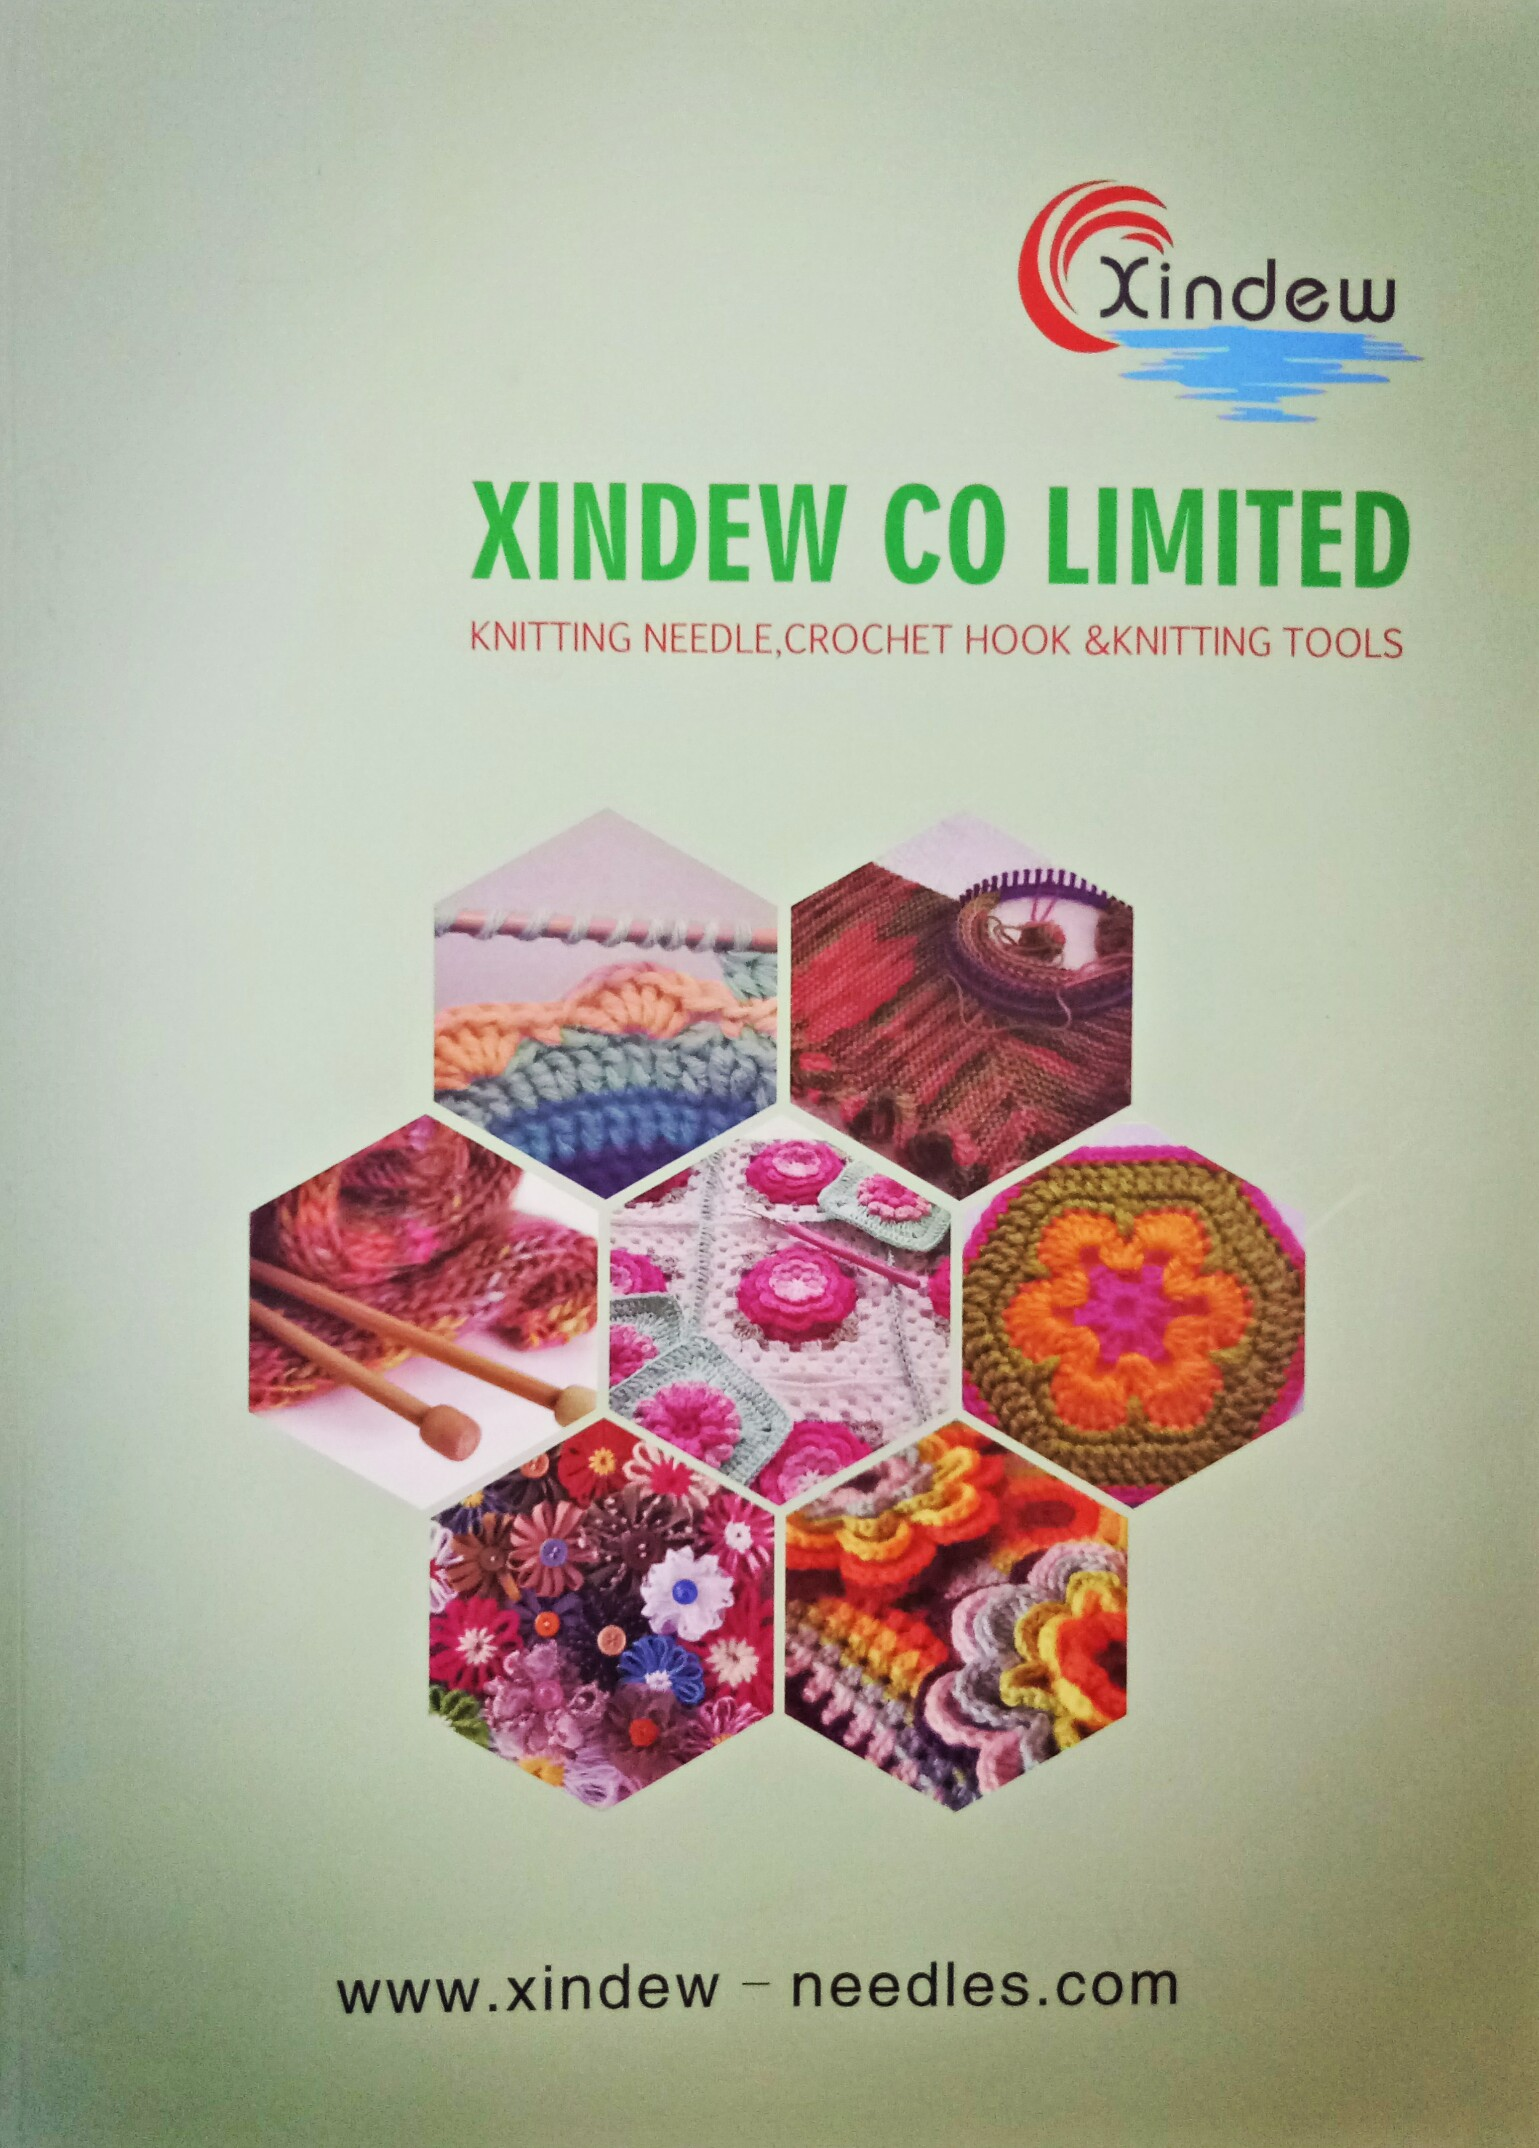 XINDEW NEEDLES CATALOGUE